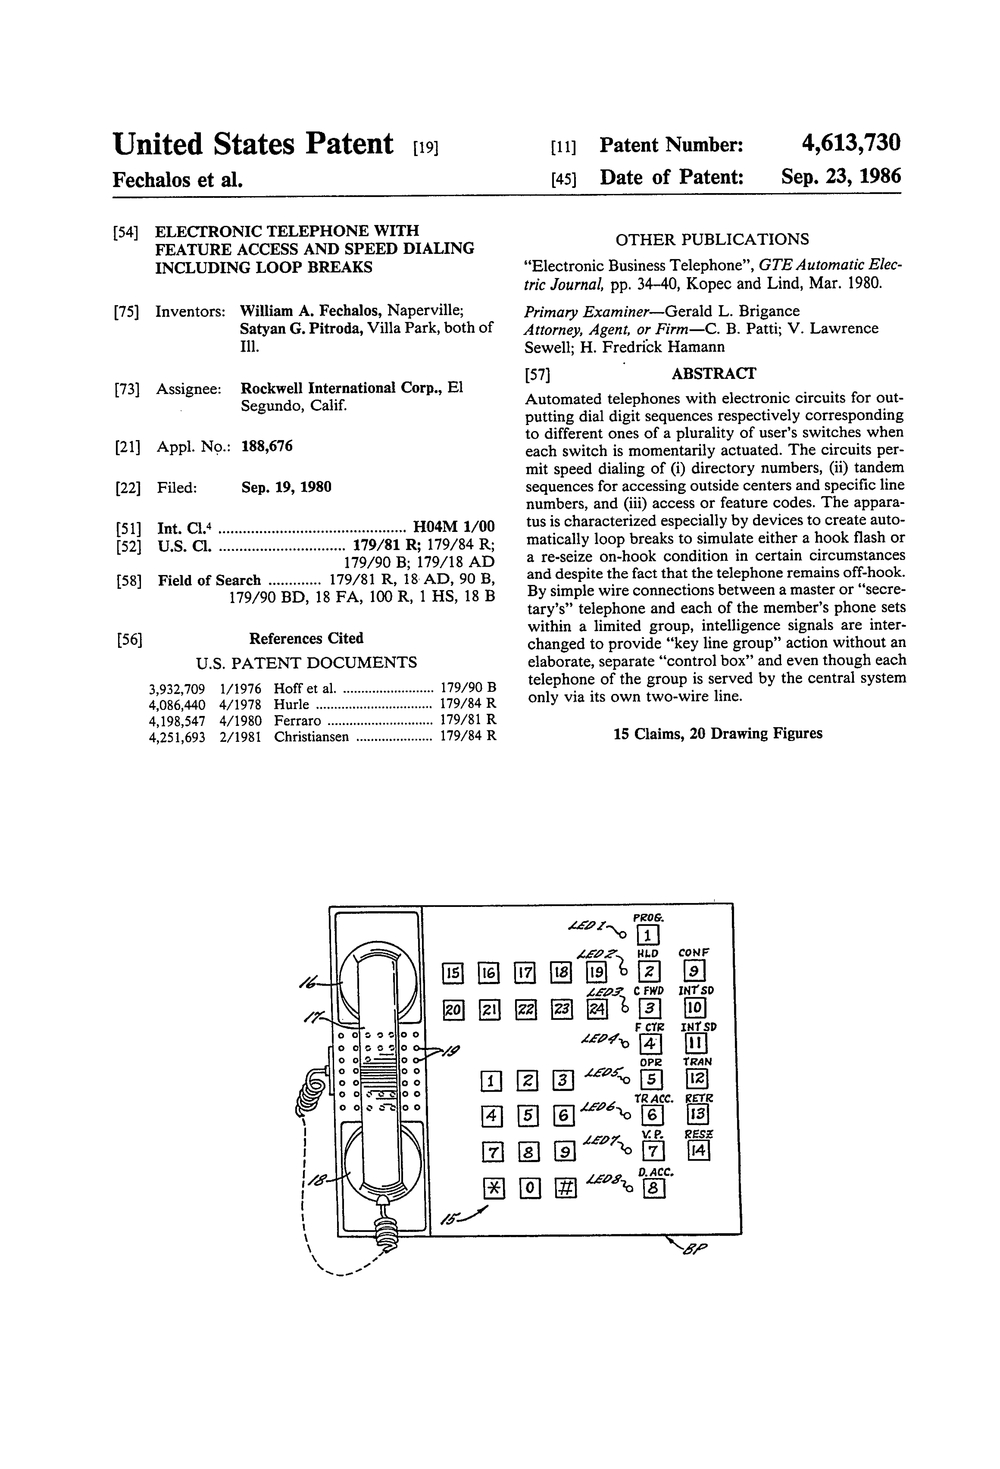 US4613730 Electronic telephone with feature access and speed dialing including loop breaks.jpg